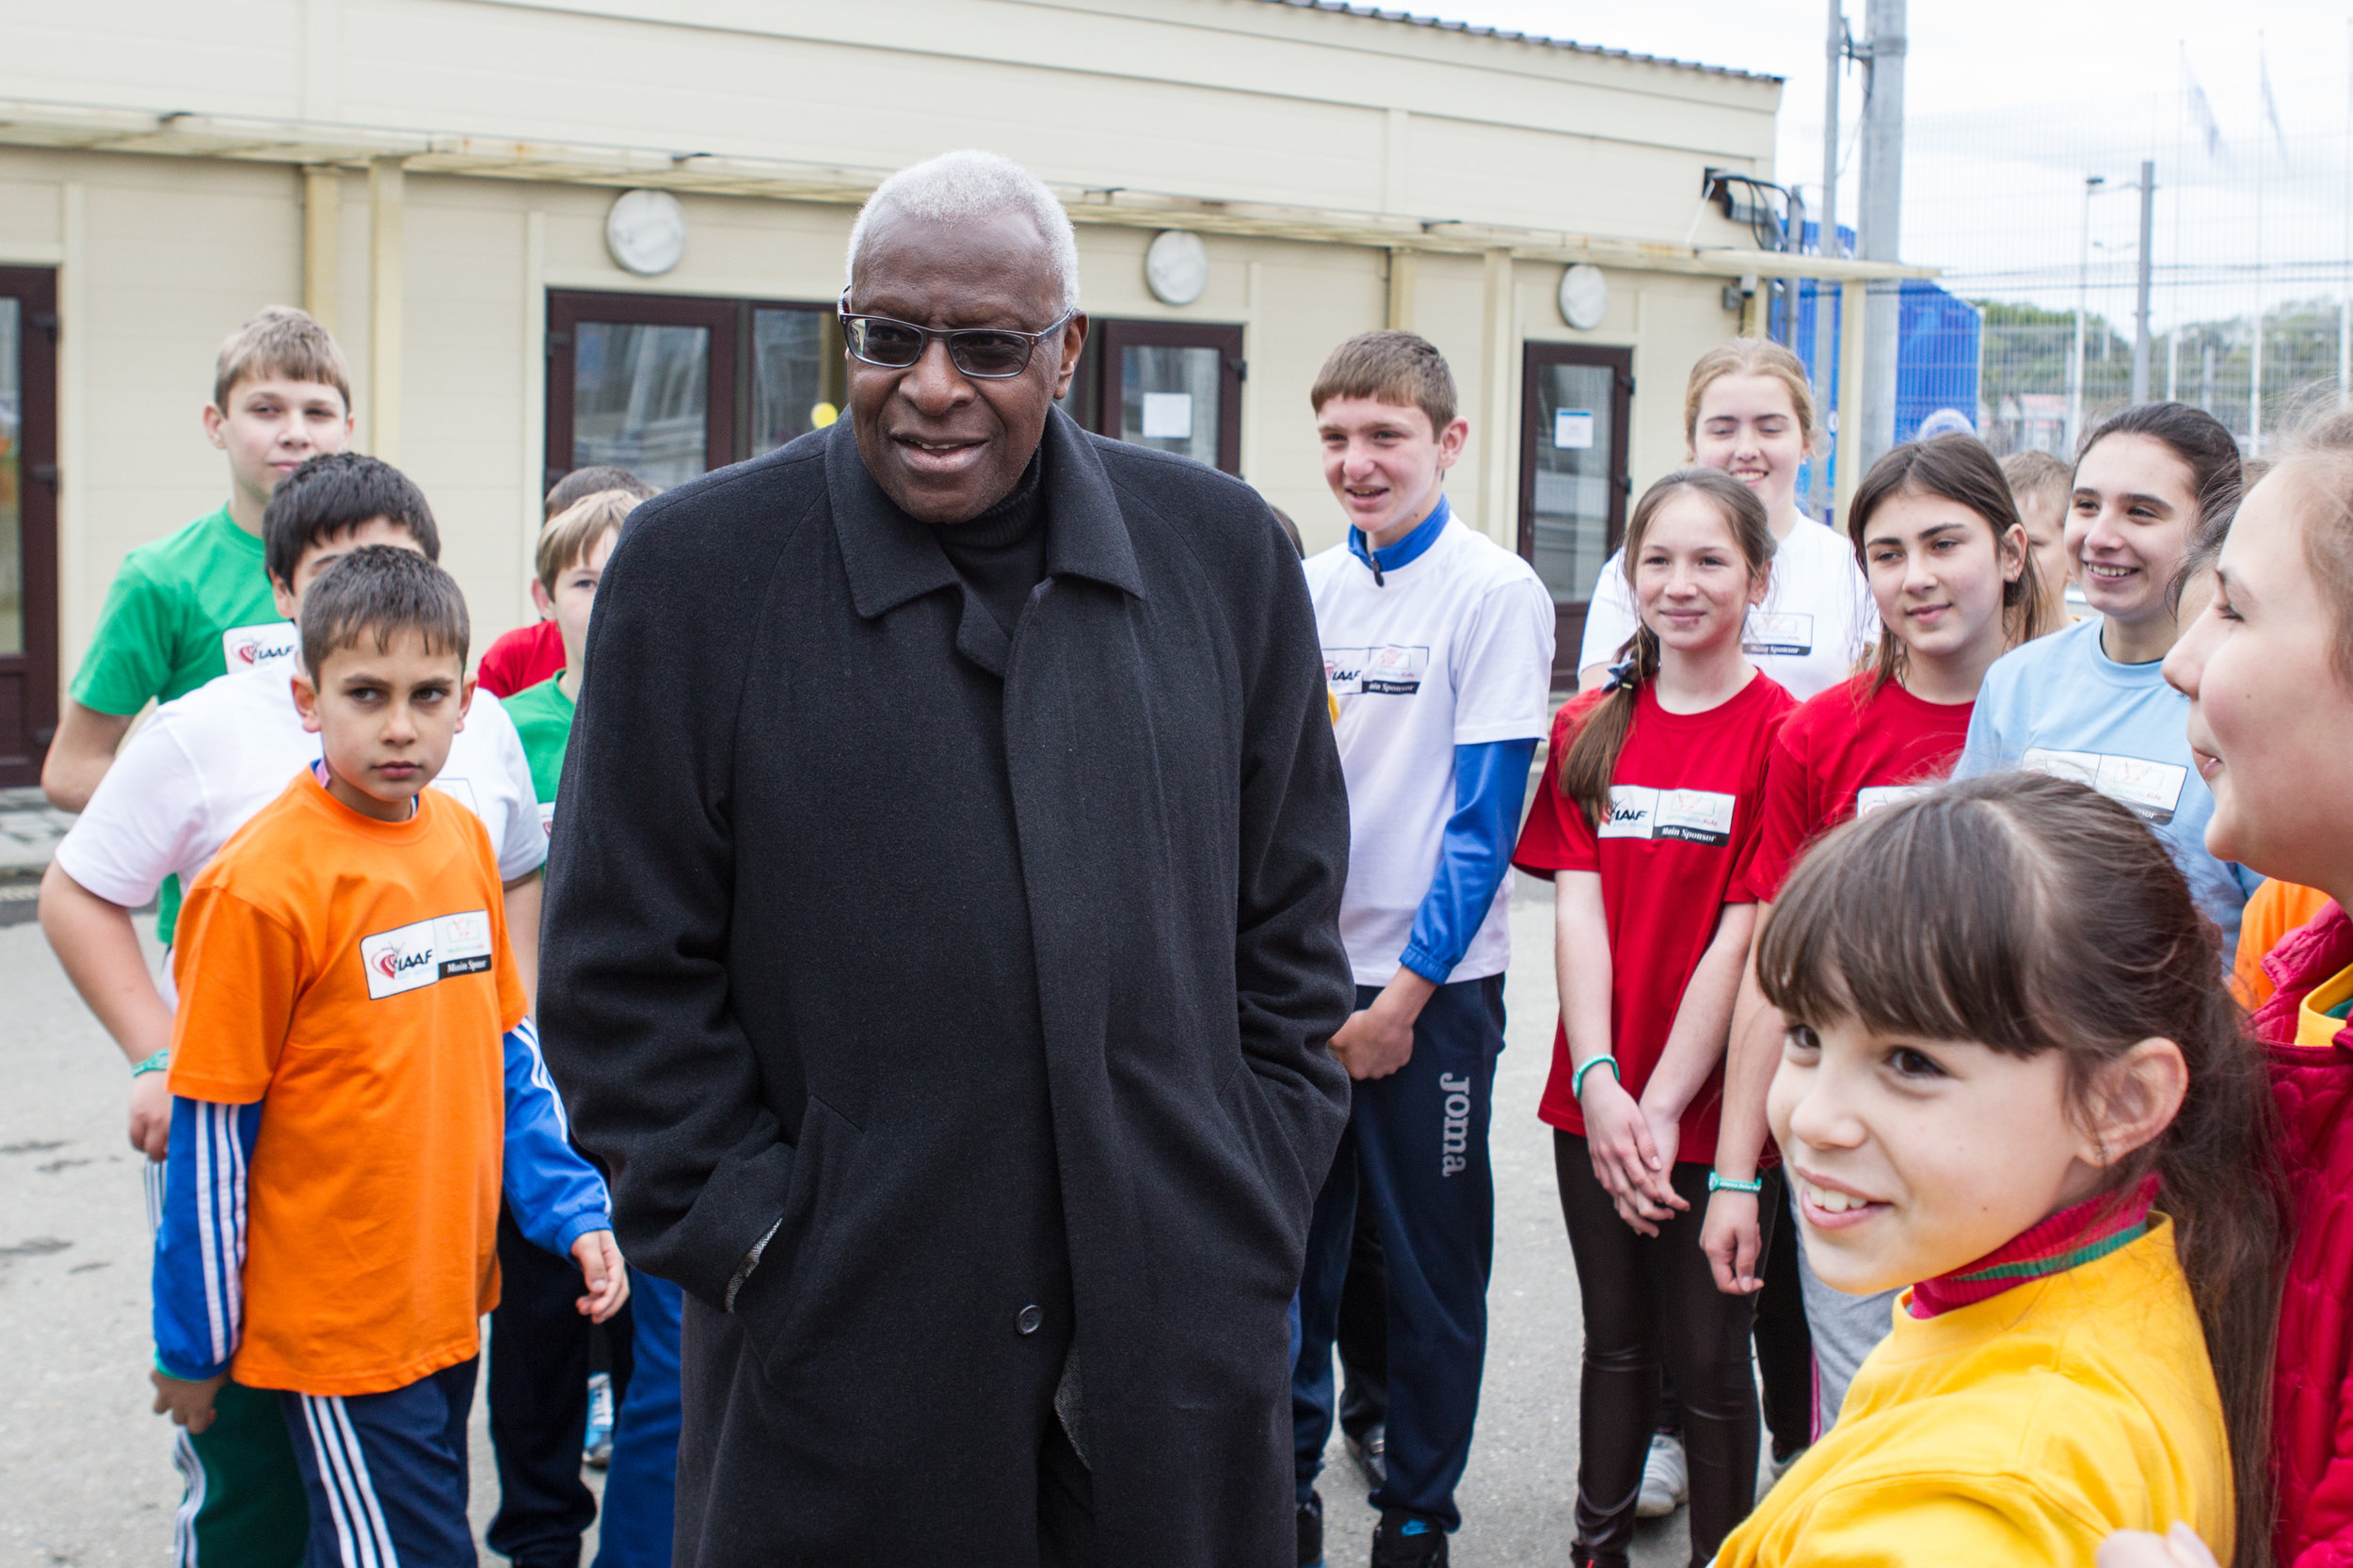 IAAF president Lamine Diack meets children before Nestle Kids track and field  demonstration event in Sochi // photo IAAF and Getty Images